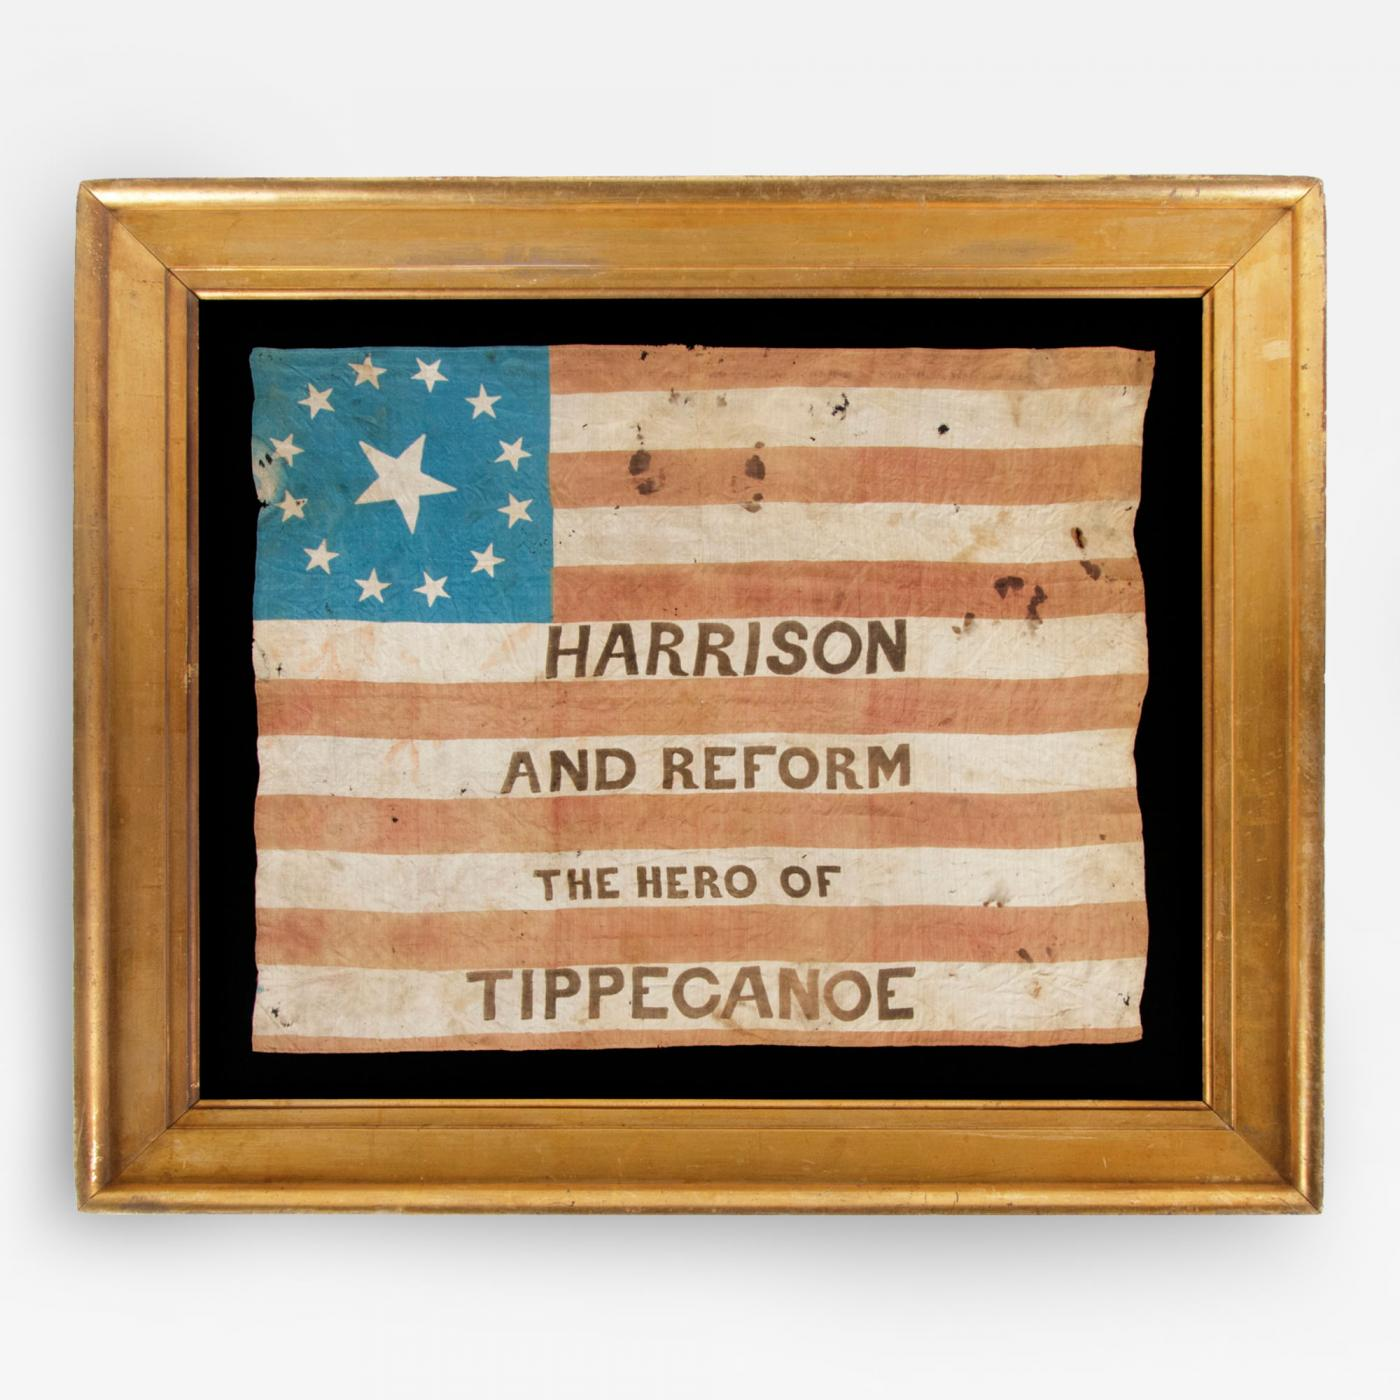 Dillsburg (PA) United States  city images : Rare Example Parade Flag From The 1840 Presidential Campaign of W. H ...